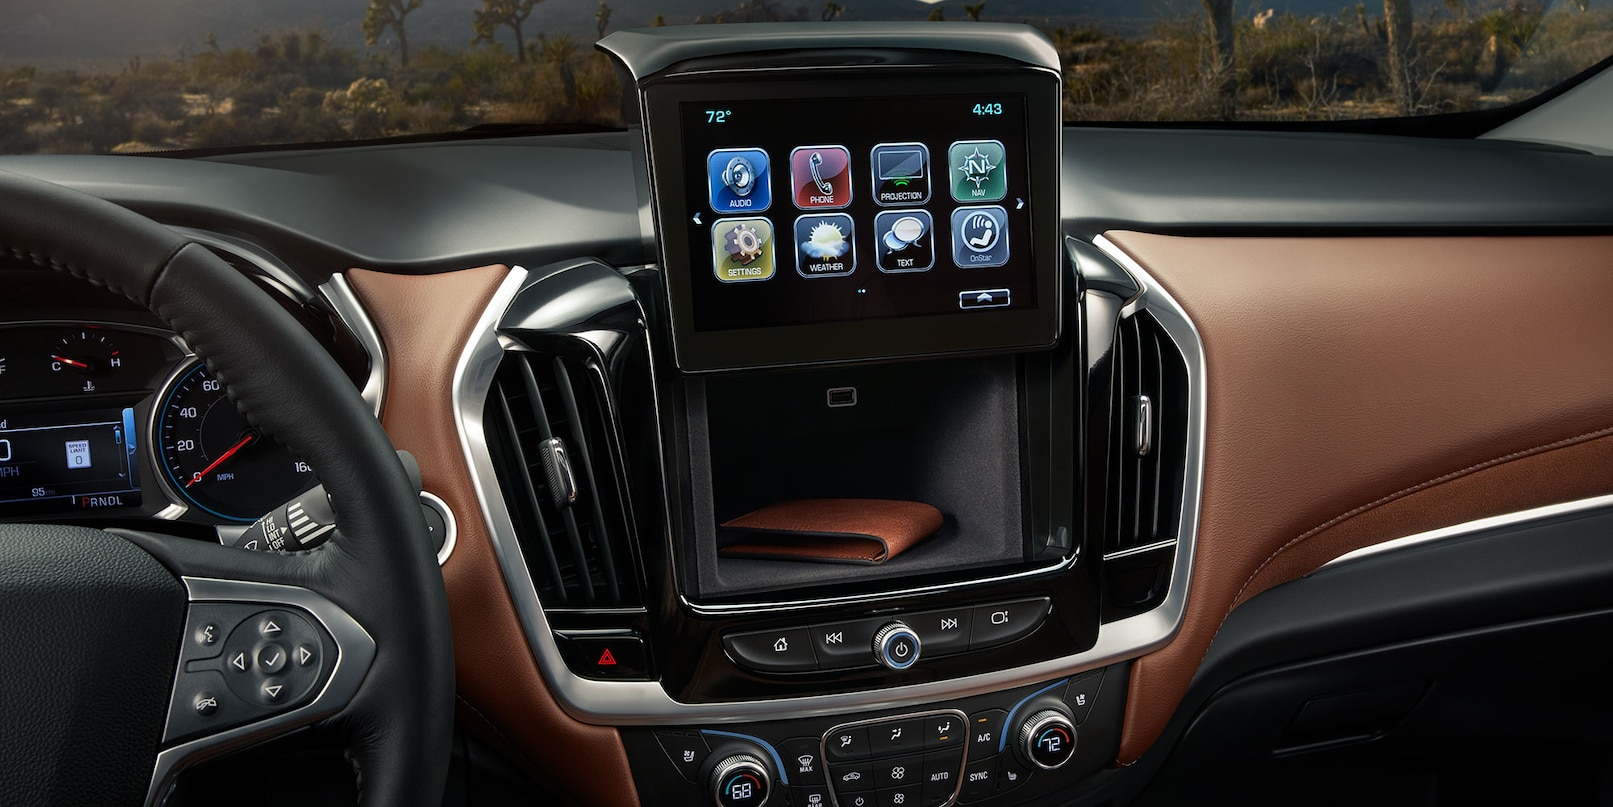 Available Technology in the Traverse